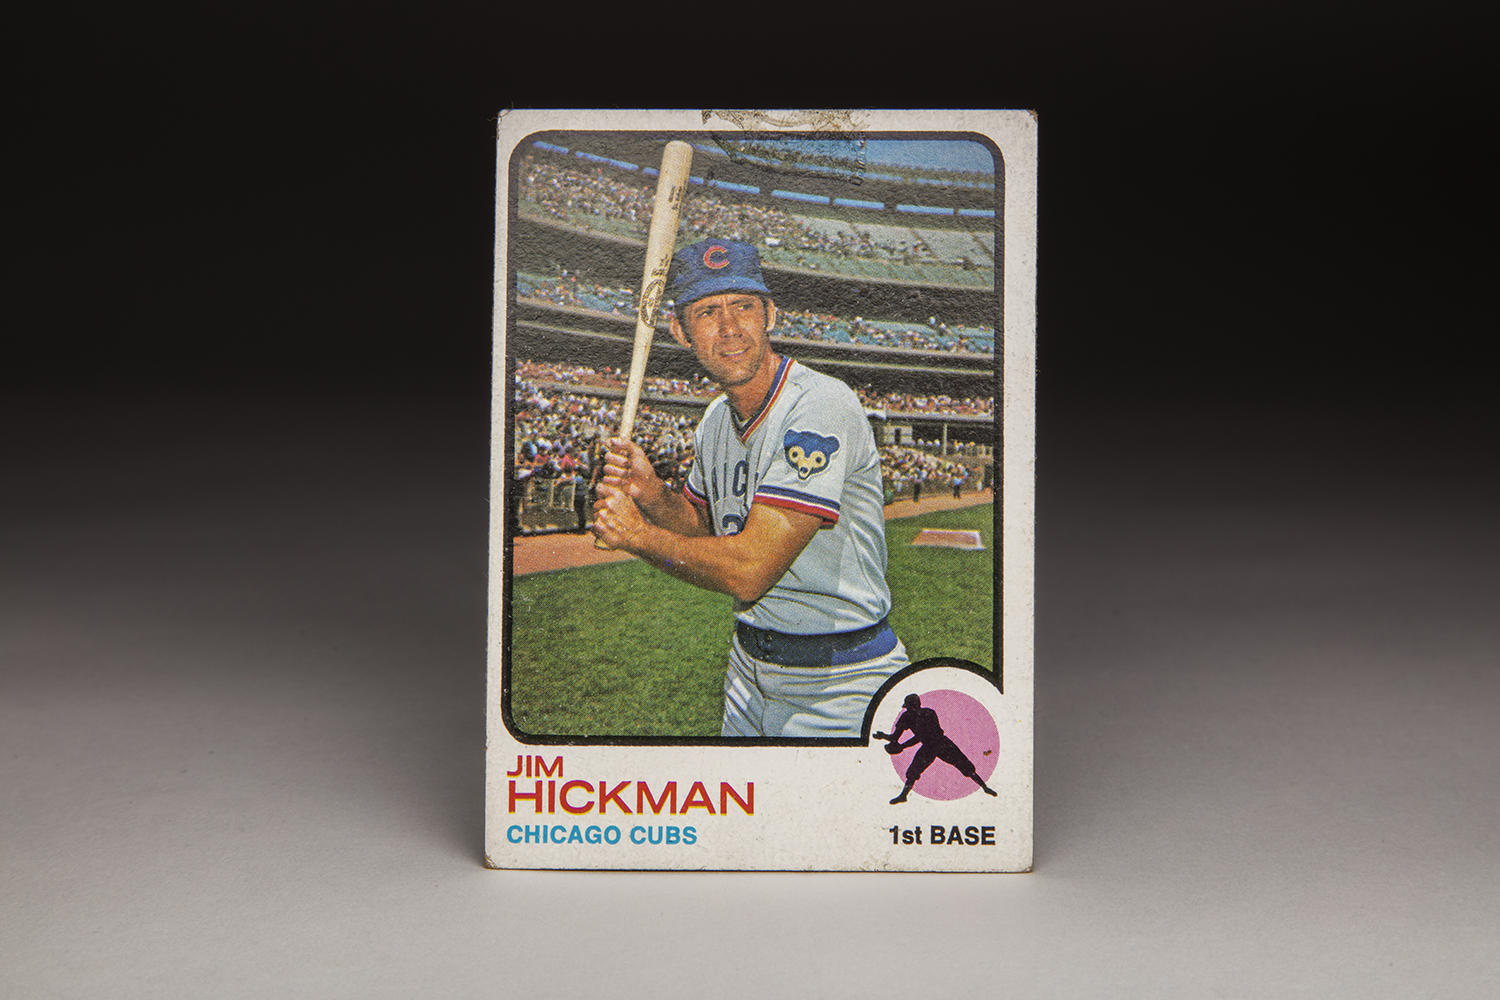 Jim Hickman's 1973 Topps card, shown above, would be the last card of his career. Hickman would be released by the St. Louis Cardinals in 1974. (Milo Stewart Jr. / National Baseball Hall of Fame)